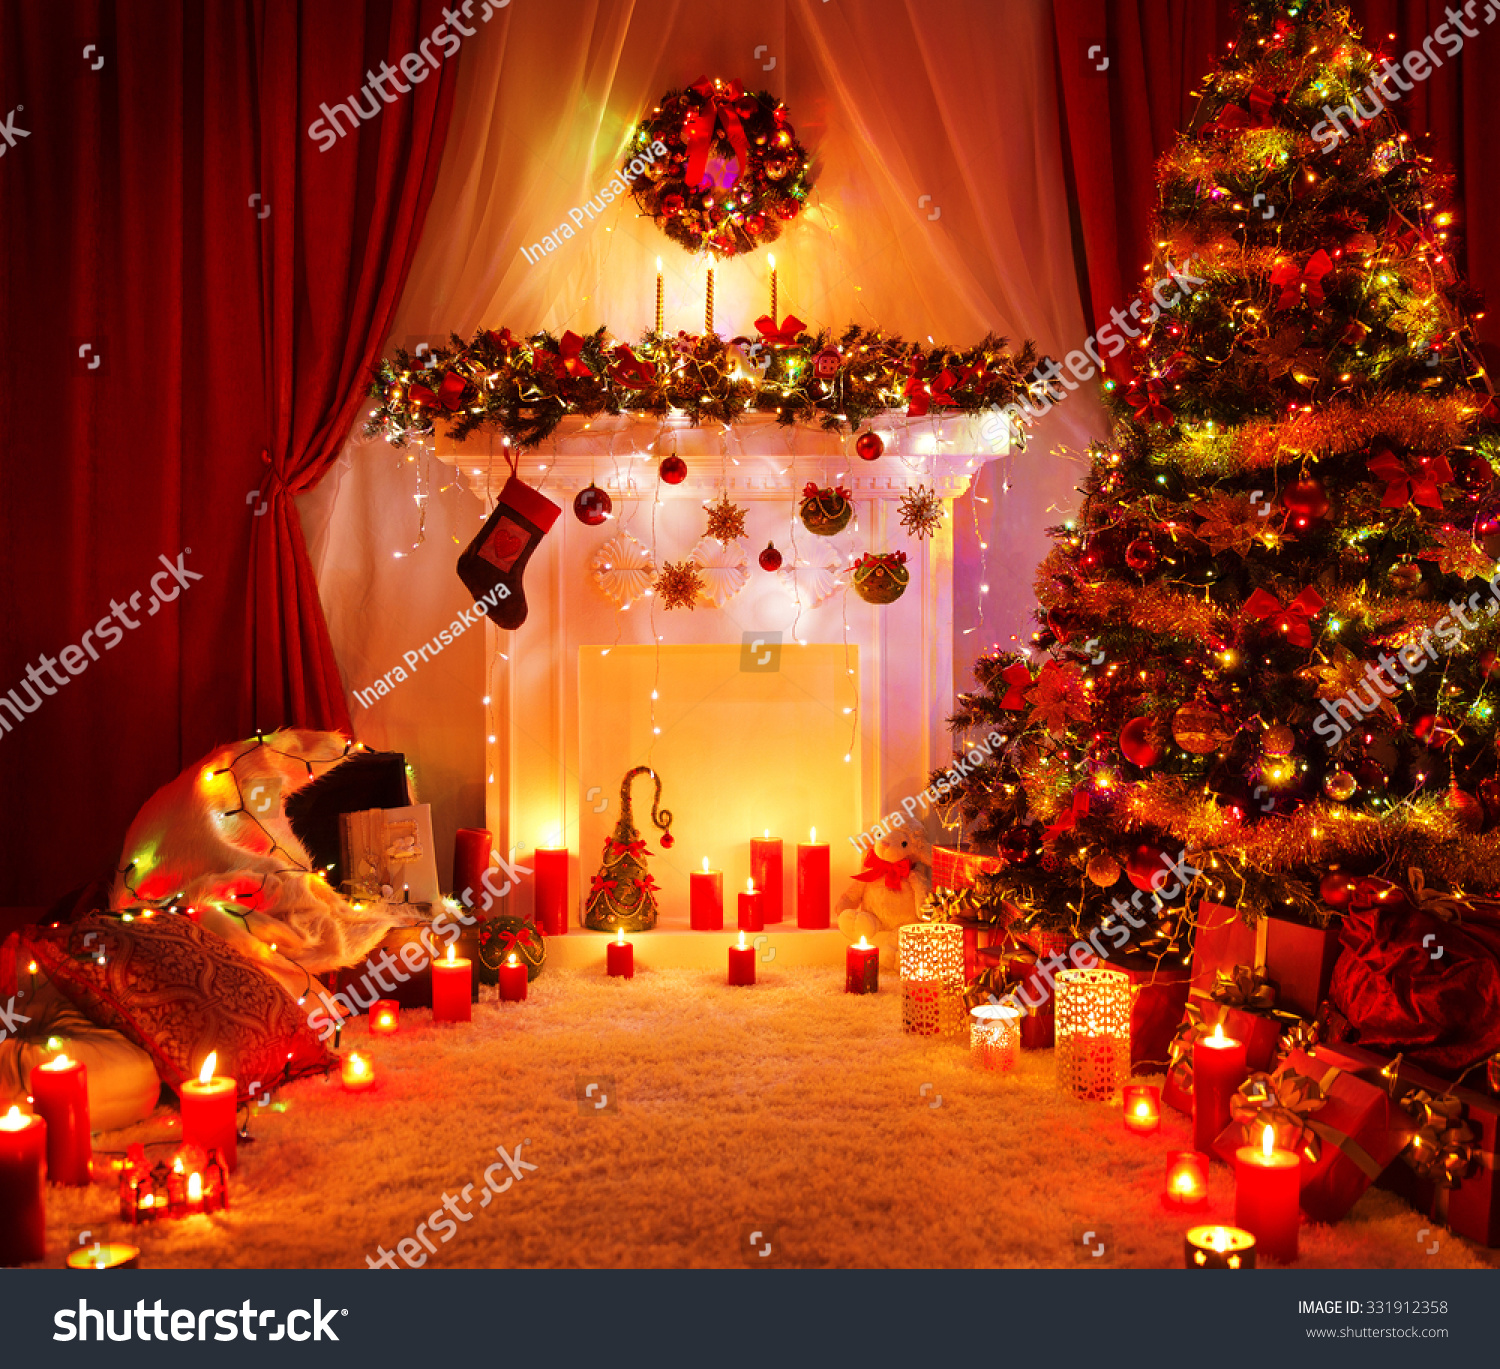 room christmas tree fireplace lights xmas home interior decoration hanging sock and present toys - Room Christmas Lights